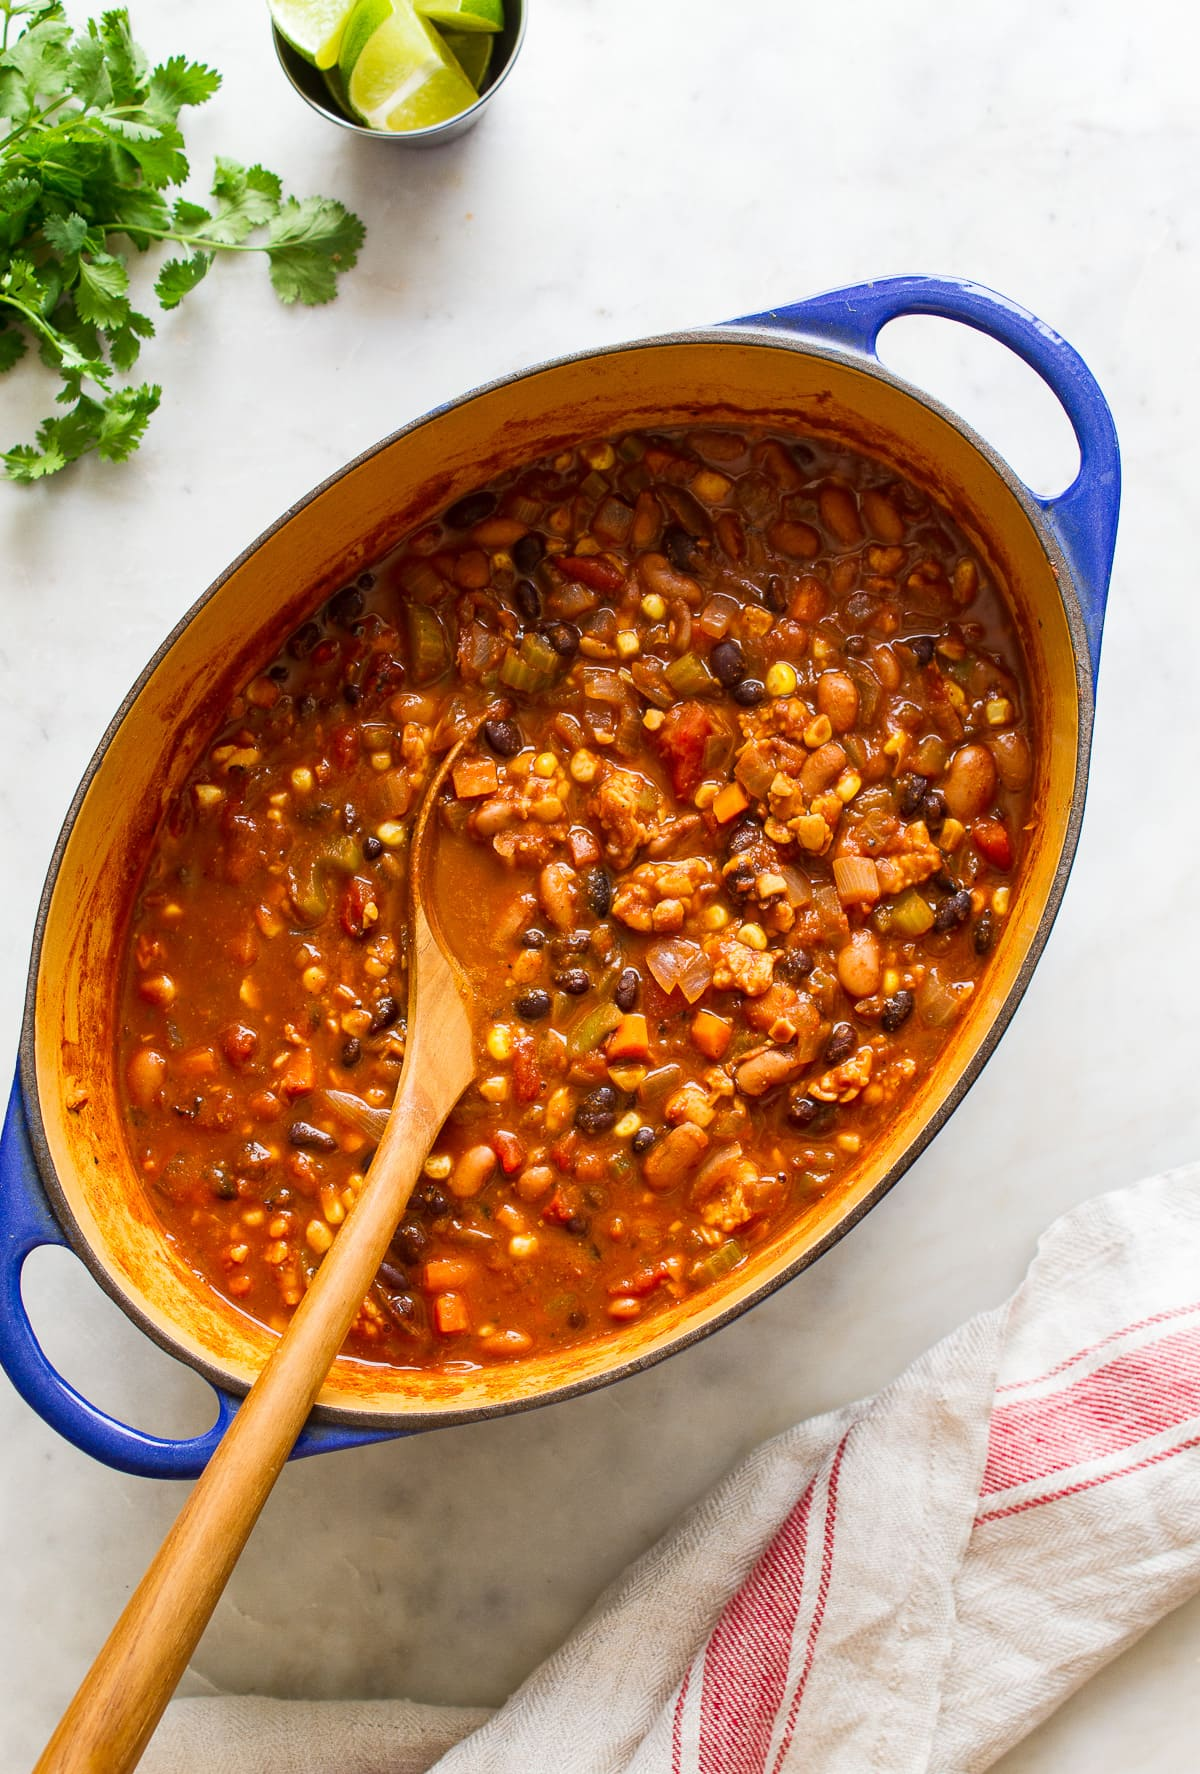 top down view of freshly made vegetable chili in a dutch oven with wooden spoon.